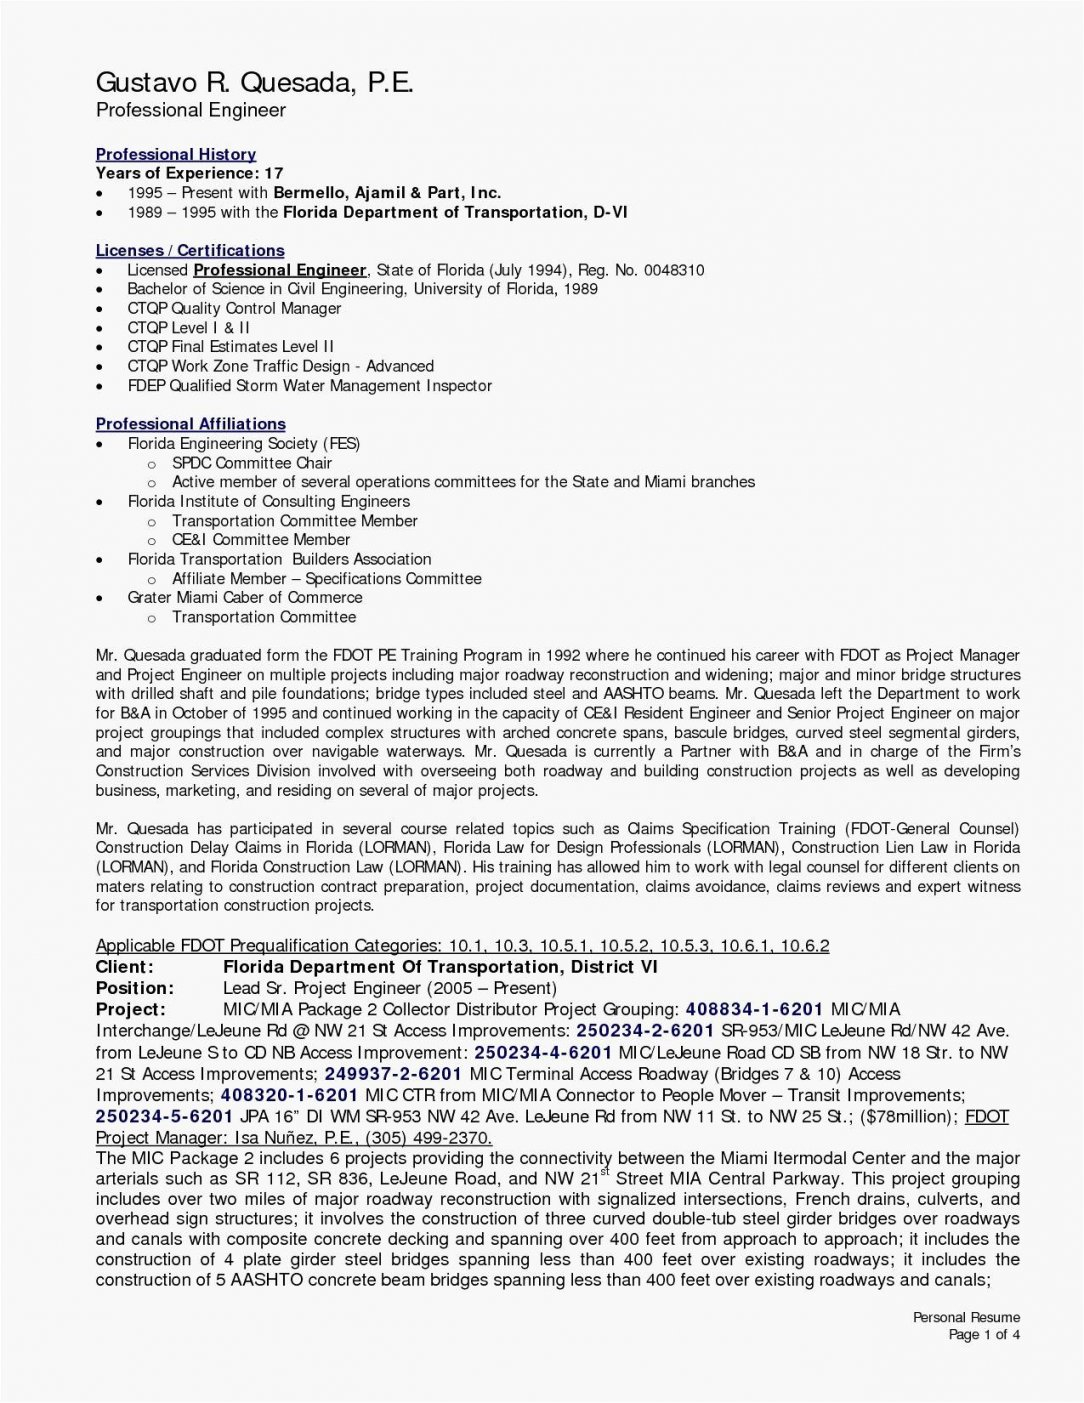 Case Manager Cover Letter Template Examples | Letter ...